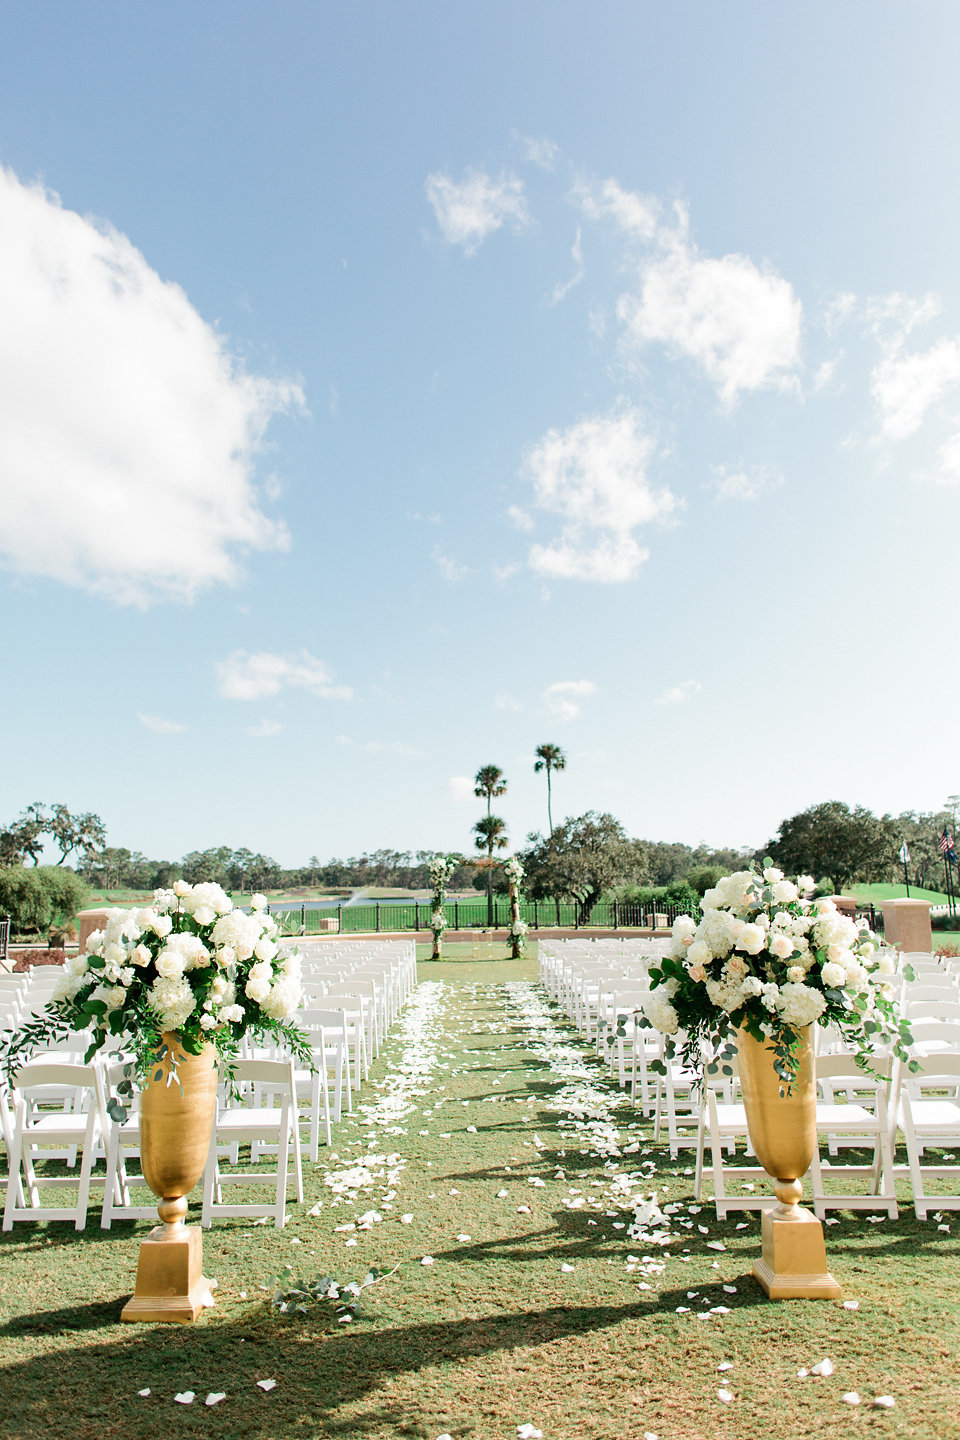 TPC Sawgrass ceremony overlooking the  golf course with blush and white floral aisle markers  Blush Wedding at TPC Sawgrass Wedding Ponte Vedra Beach  Jacksonville Wedding Planner Blue Ribbon Weddings  Jacksonville Wedding Photographer Debra Eby Photography  Wedding Ceremony & Reception at TPC Sawgrass Jacksonville